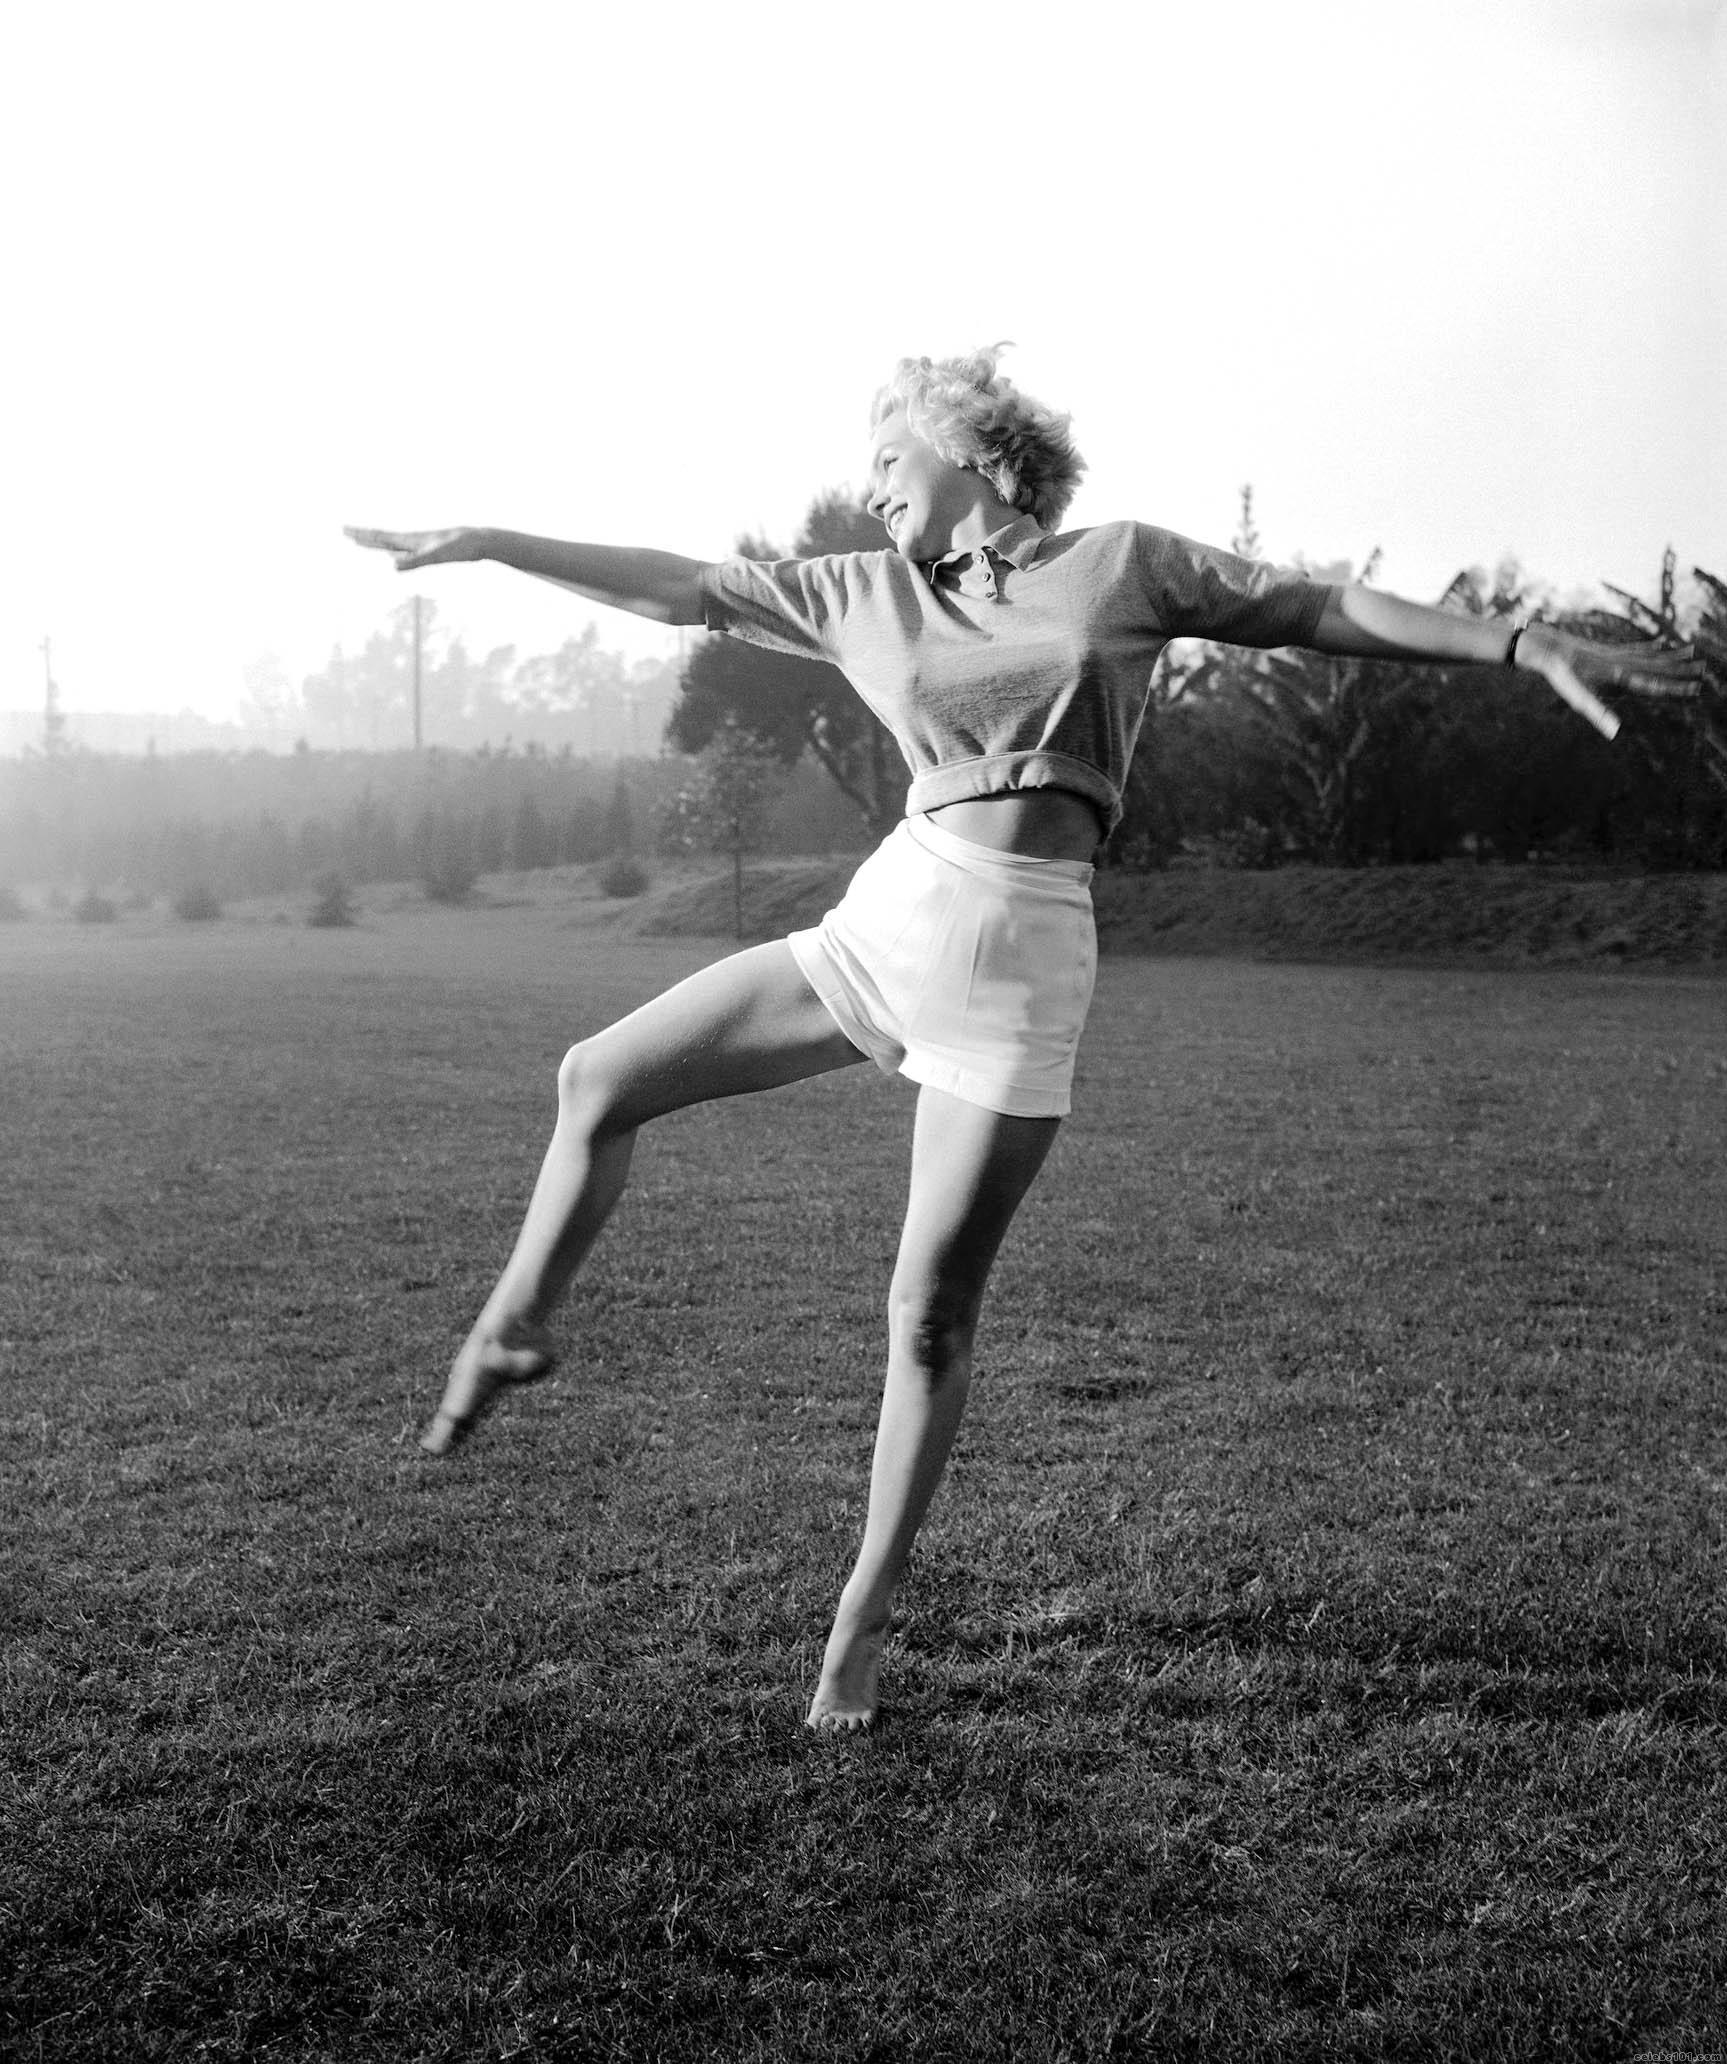 grass marilyn Monroe grayscale HD Wallpaper